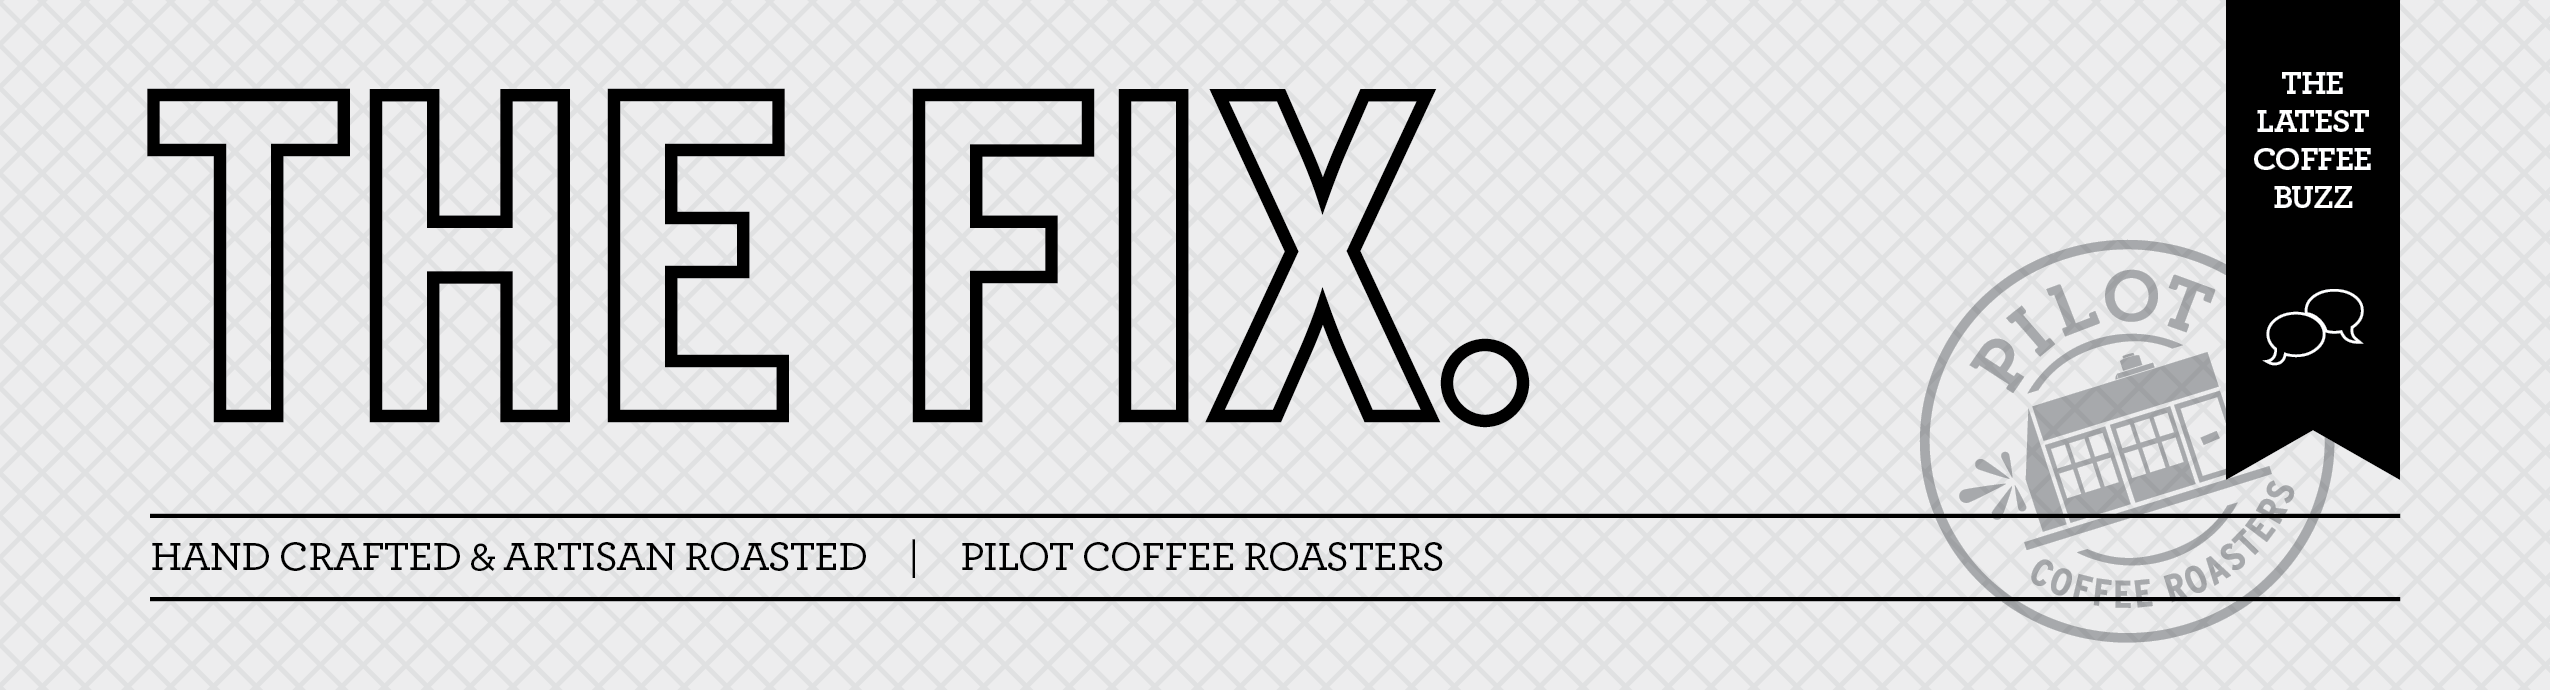 The Fix. Holiday Blend is Back!